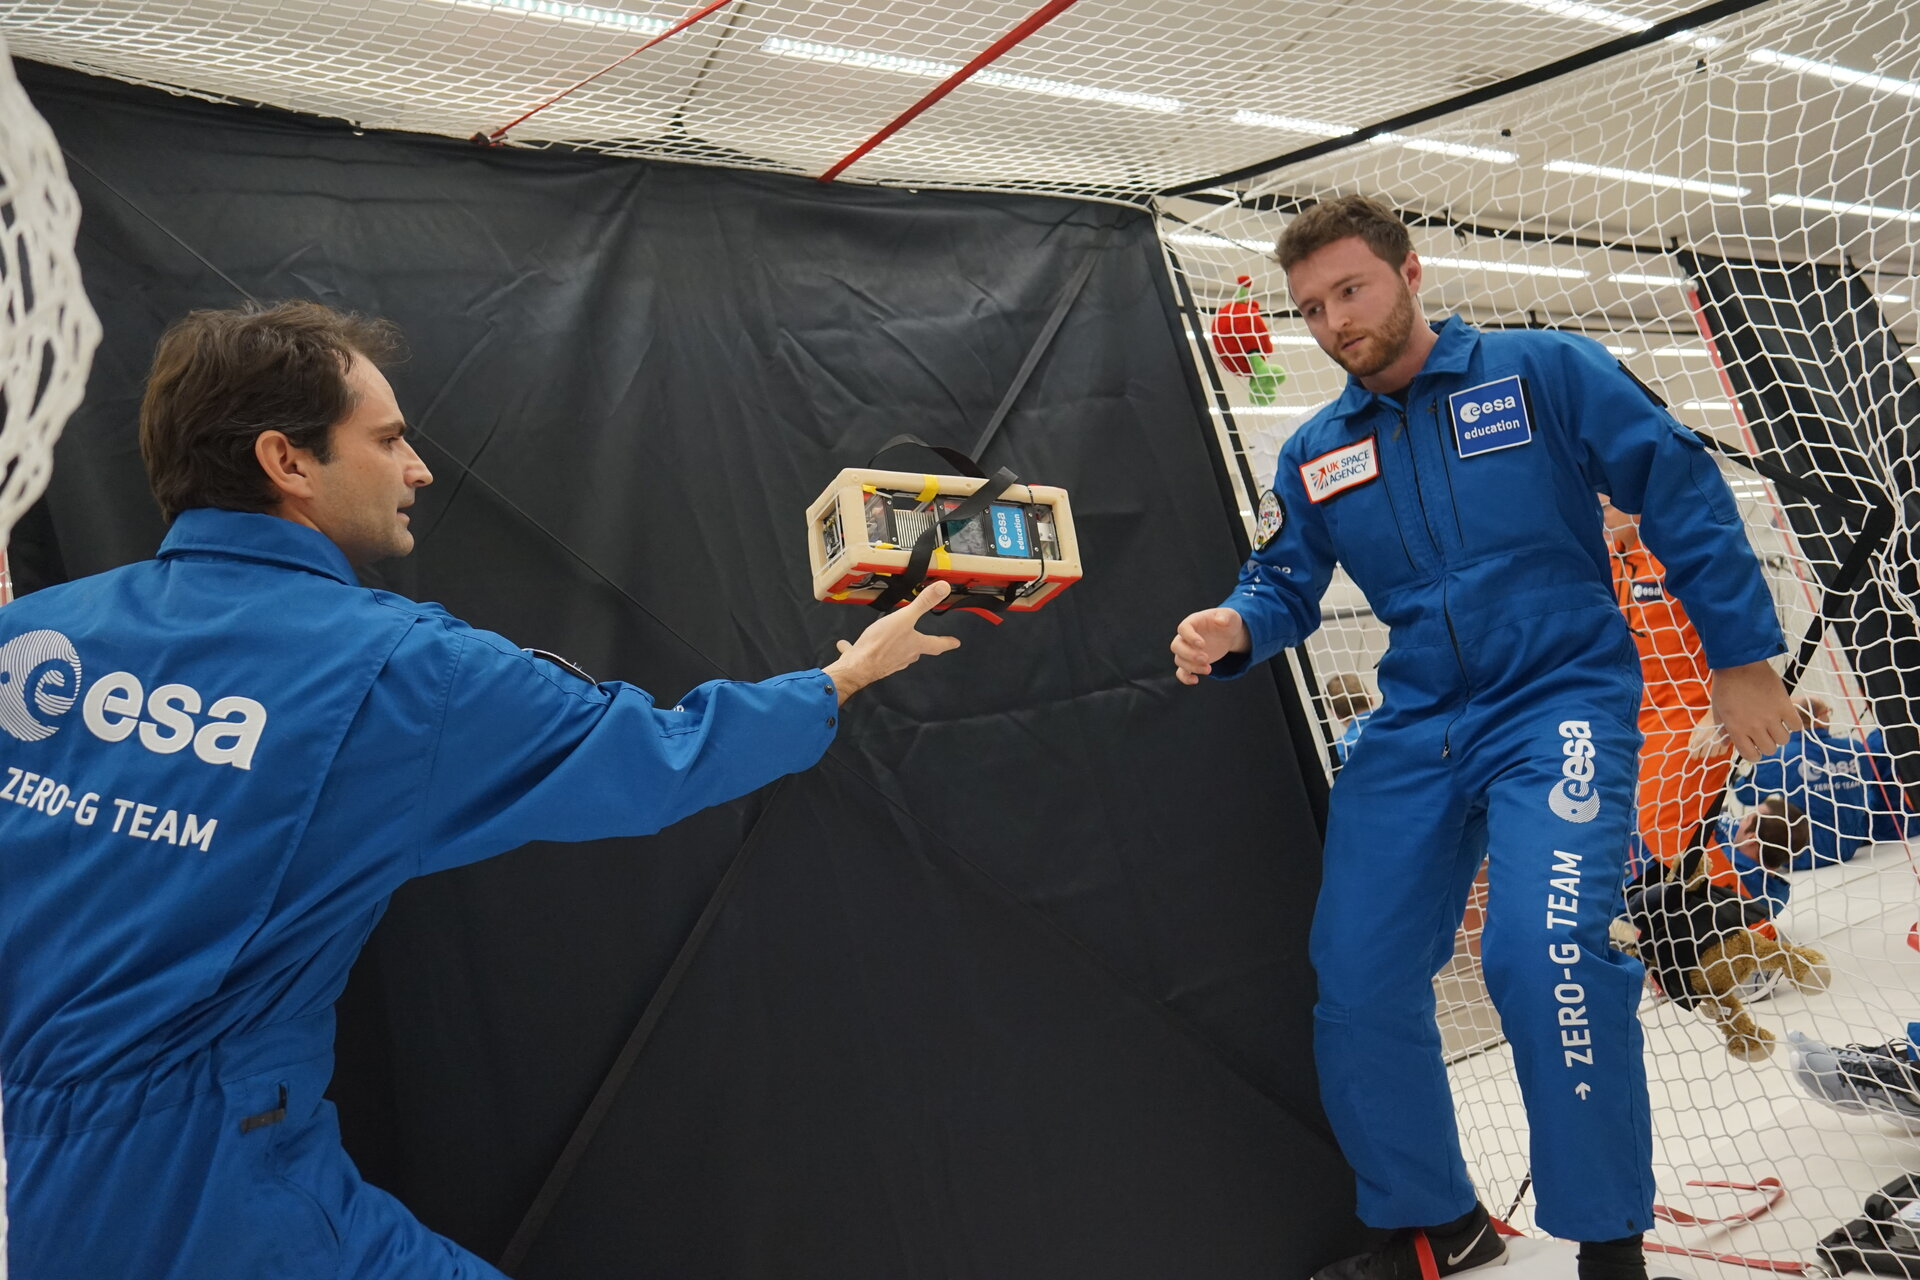 Release of the PHPCubed experiment soon after injection into microgravity